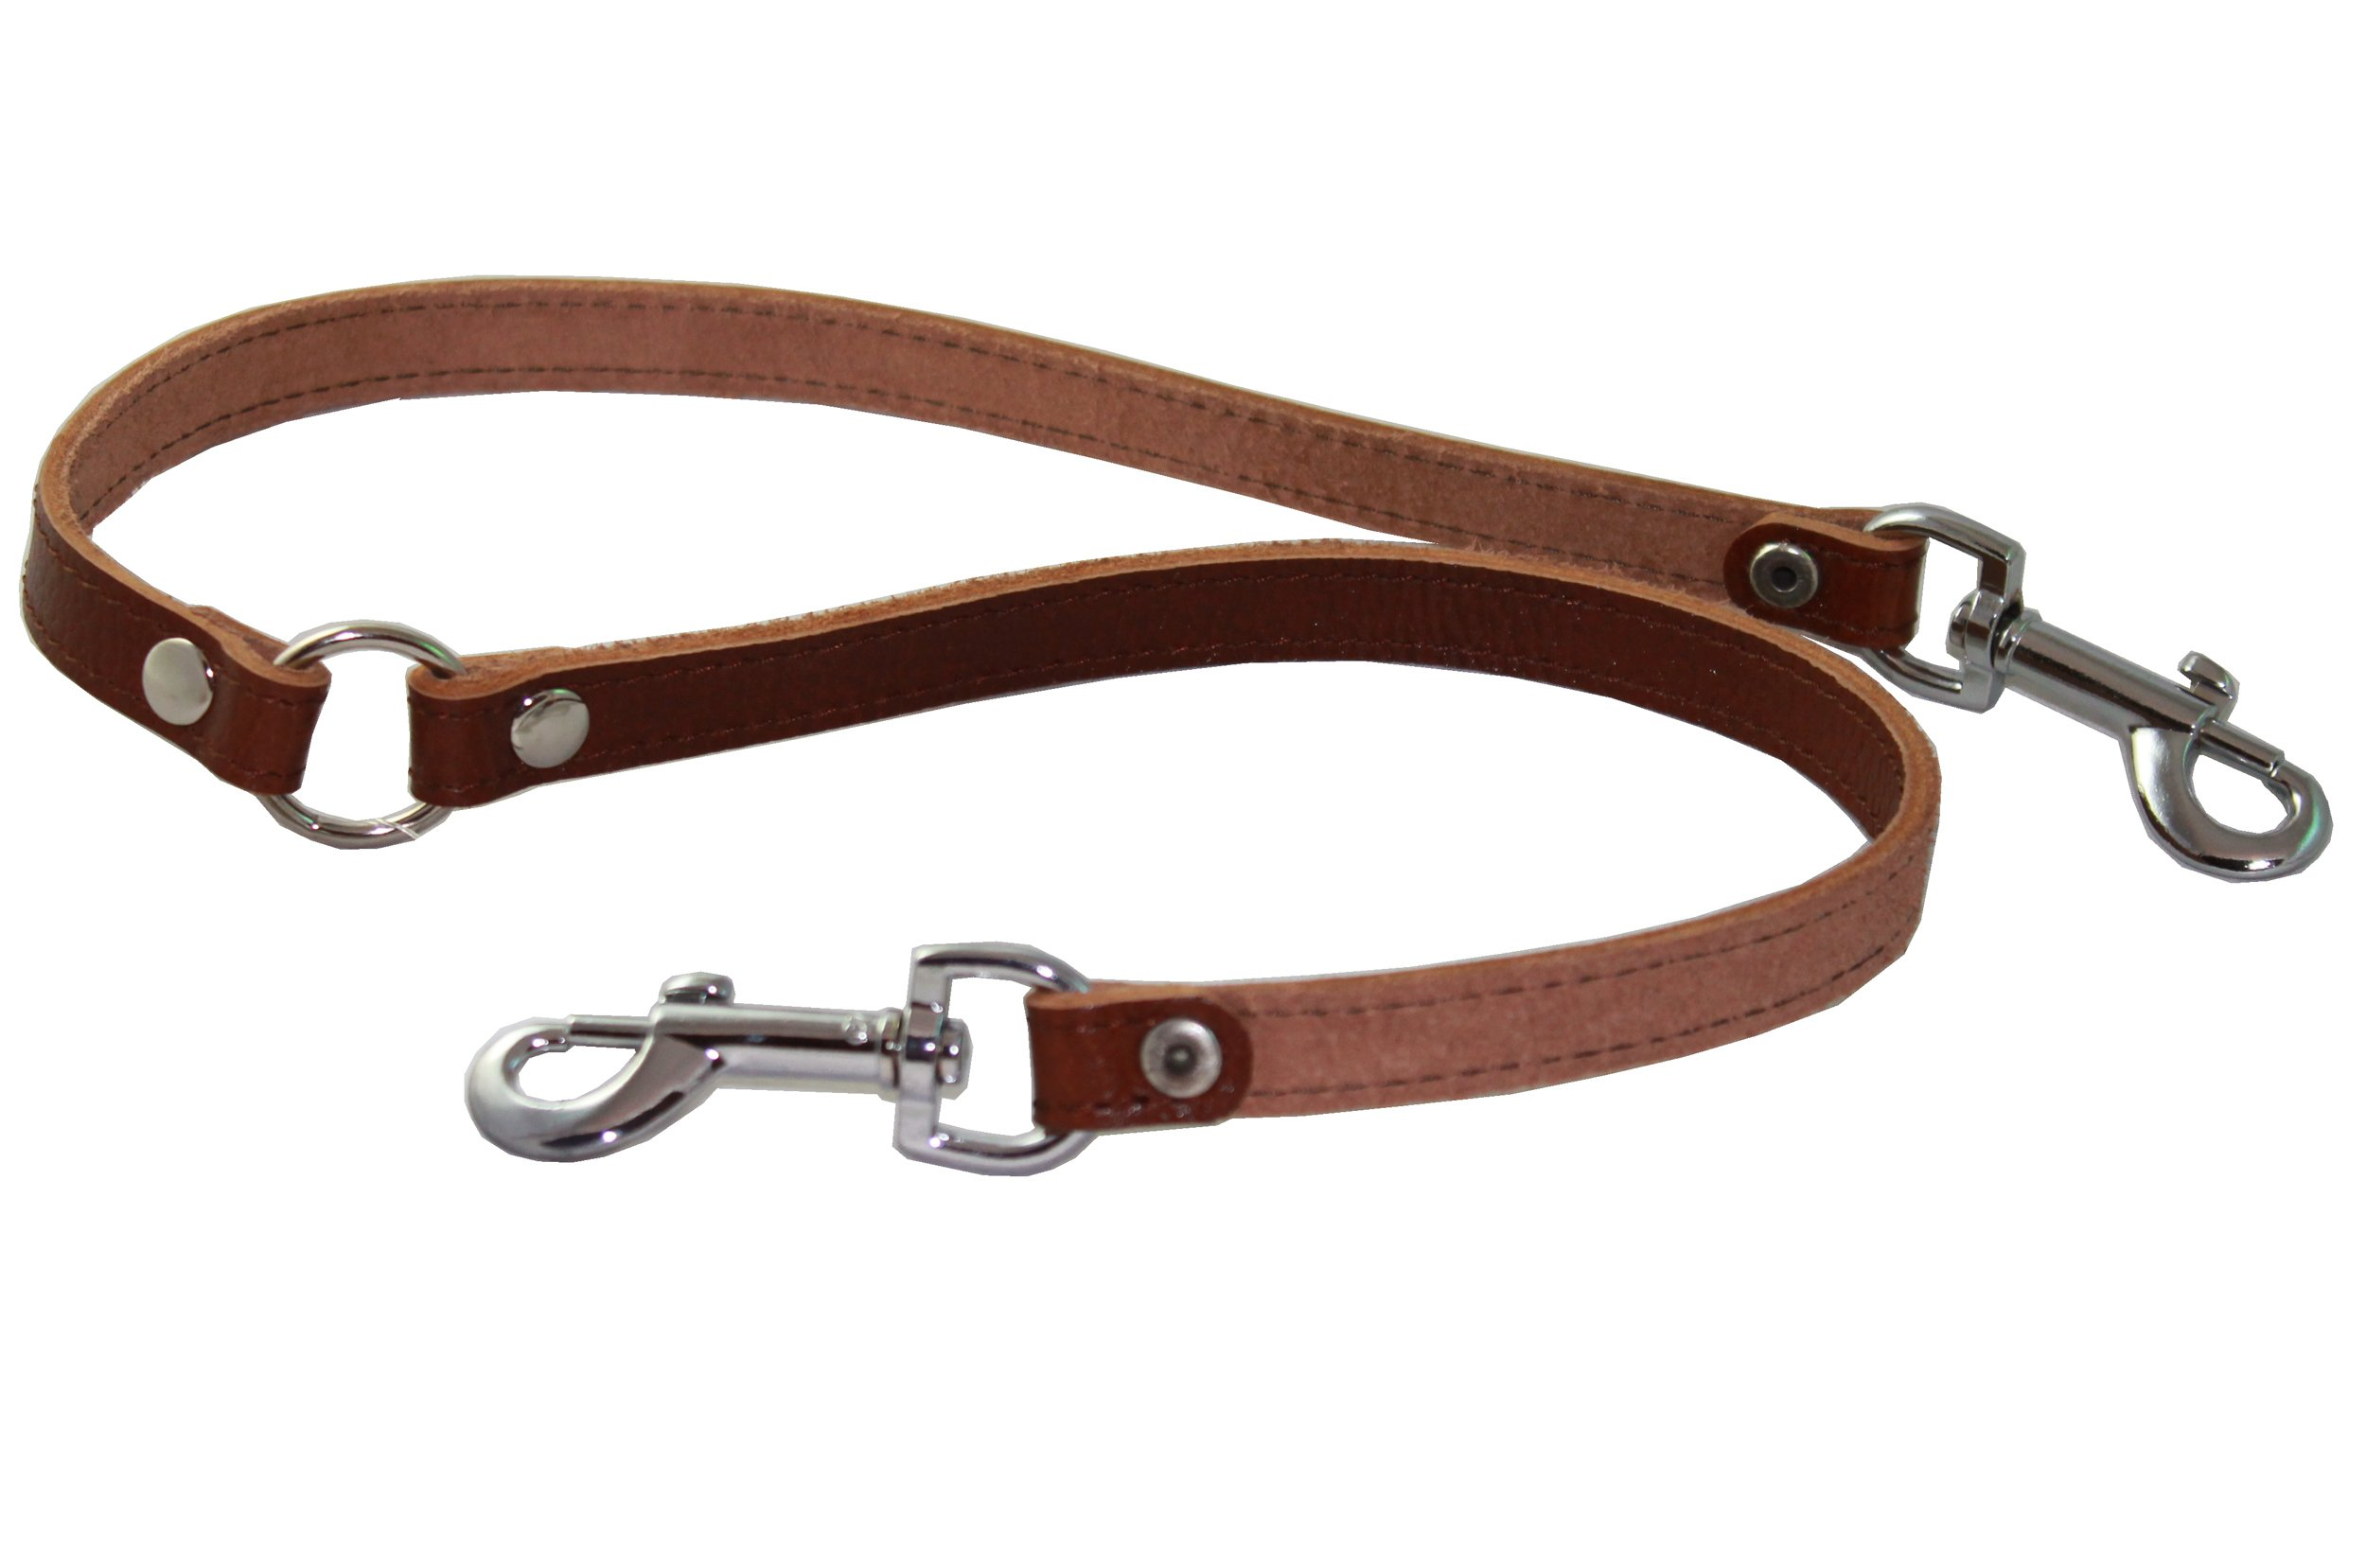 Genuine Leather Double Dog Leash - Two Dog Coupler (Brown, Small: 15'' Long by 1/2'' Wide)